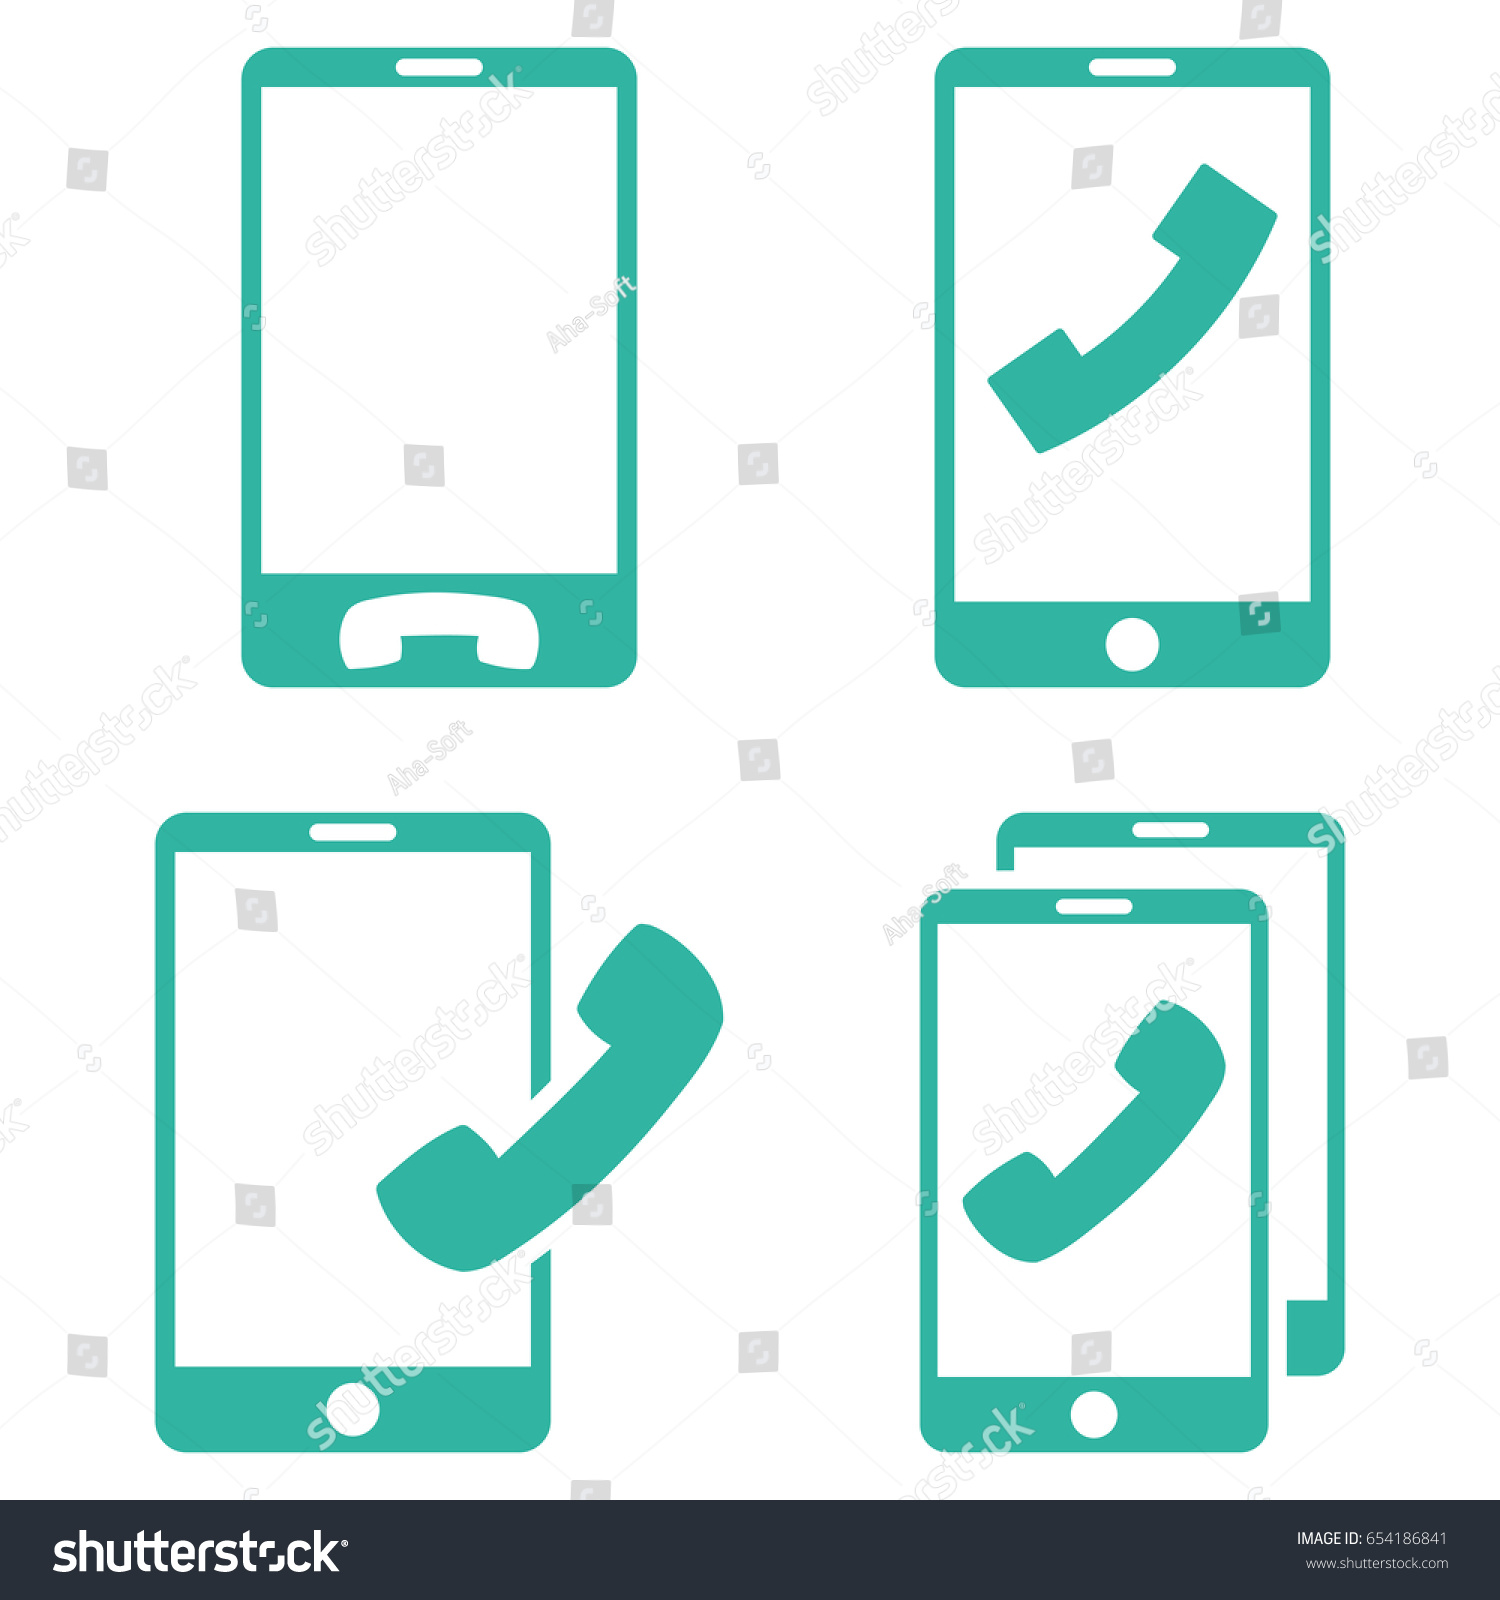 Mobile phones vector icon set collection stock vector 654186841 mobile phones vector icon set collection style is cyan flat symbols on a white background biocorpaavc